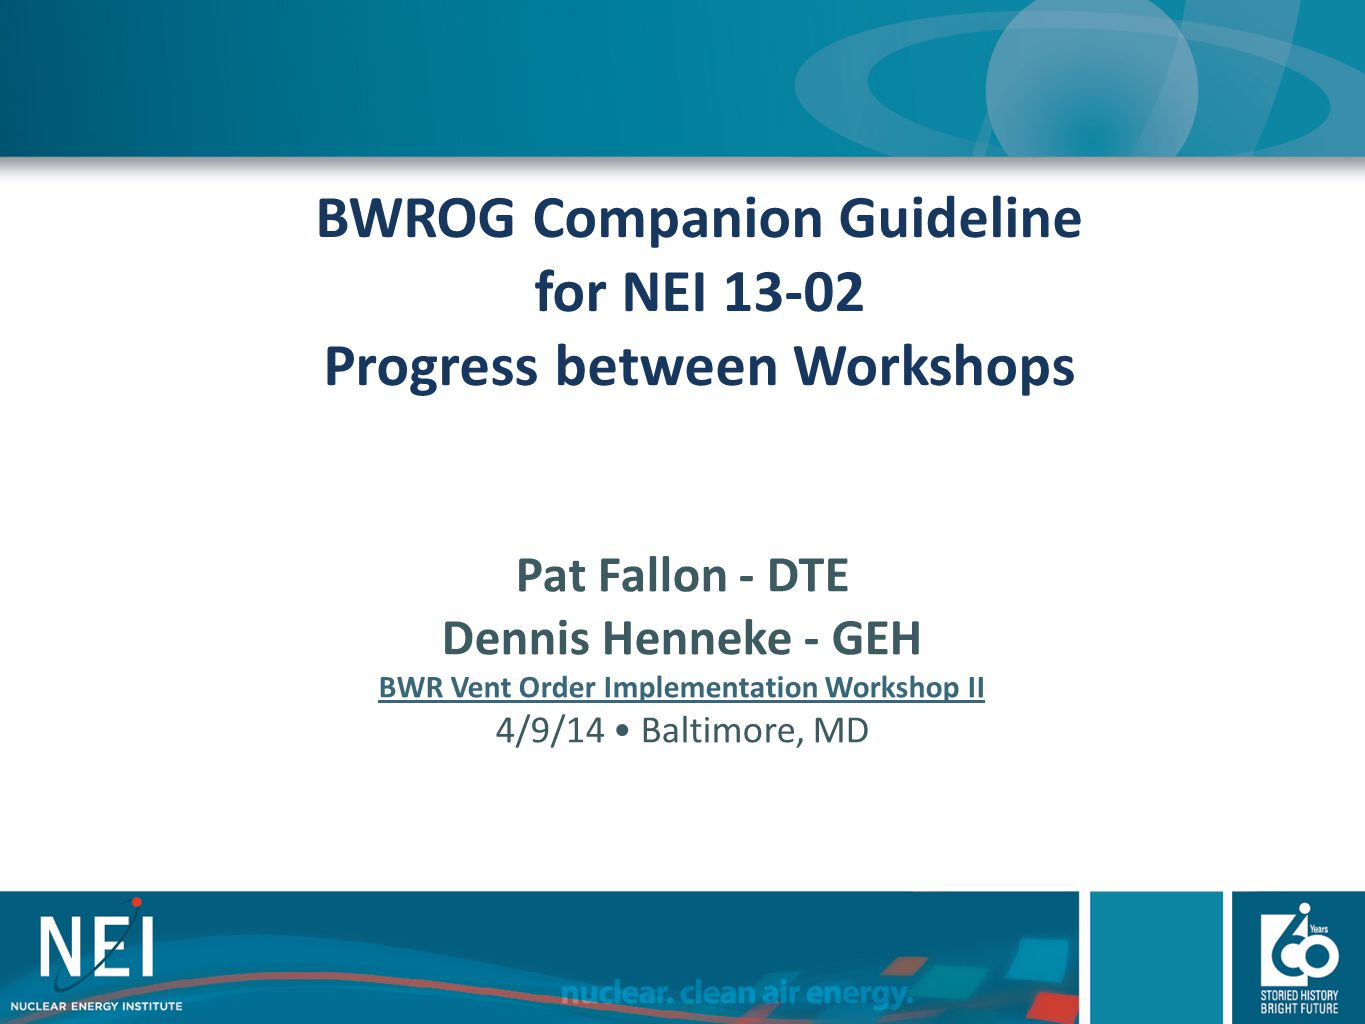 BWROG Companion Guideline for NEI 13-02 Progress between Workshops Pat Fallon - DTE Dennis Henneke - GEH BWR Vent Order Implementation Workshop II 4/9